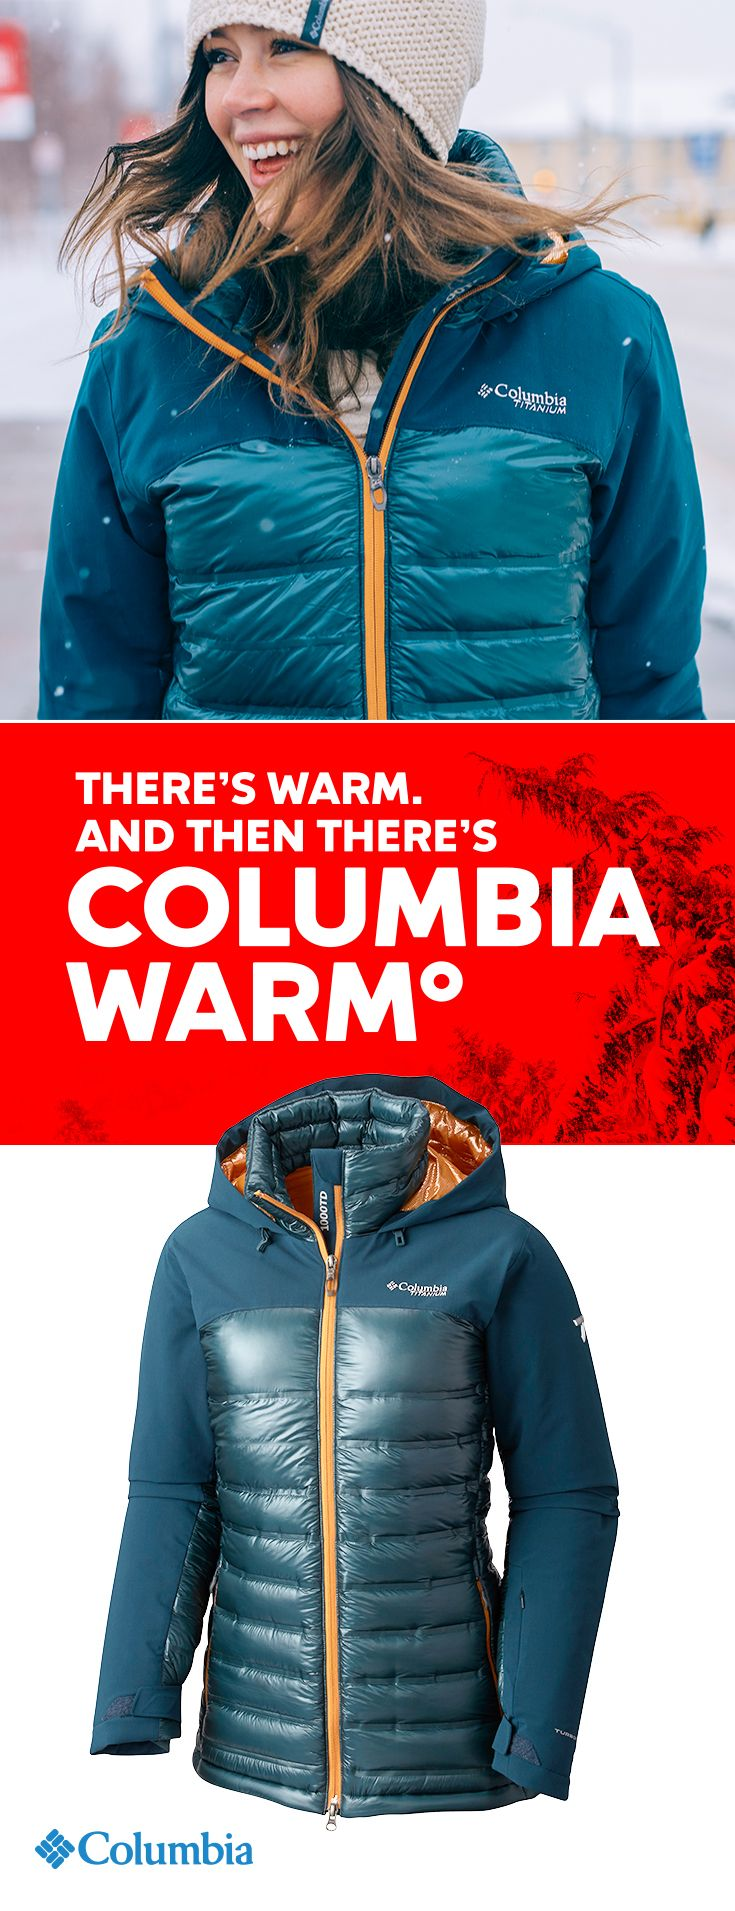 Get insanely warm. The Heatzone 1000 heats up with 900 fill, water-resistant goose down, 100g Omni-Heat insulation, a thermal reflective lining, and finally, our revolutionary wave baffle construction that eliminates the cold spots found in traditional down jackets.